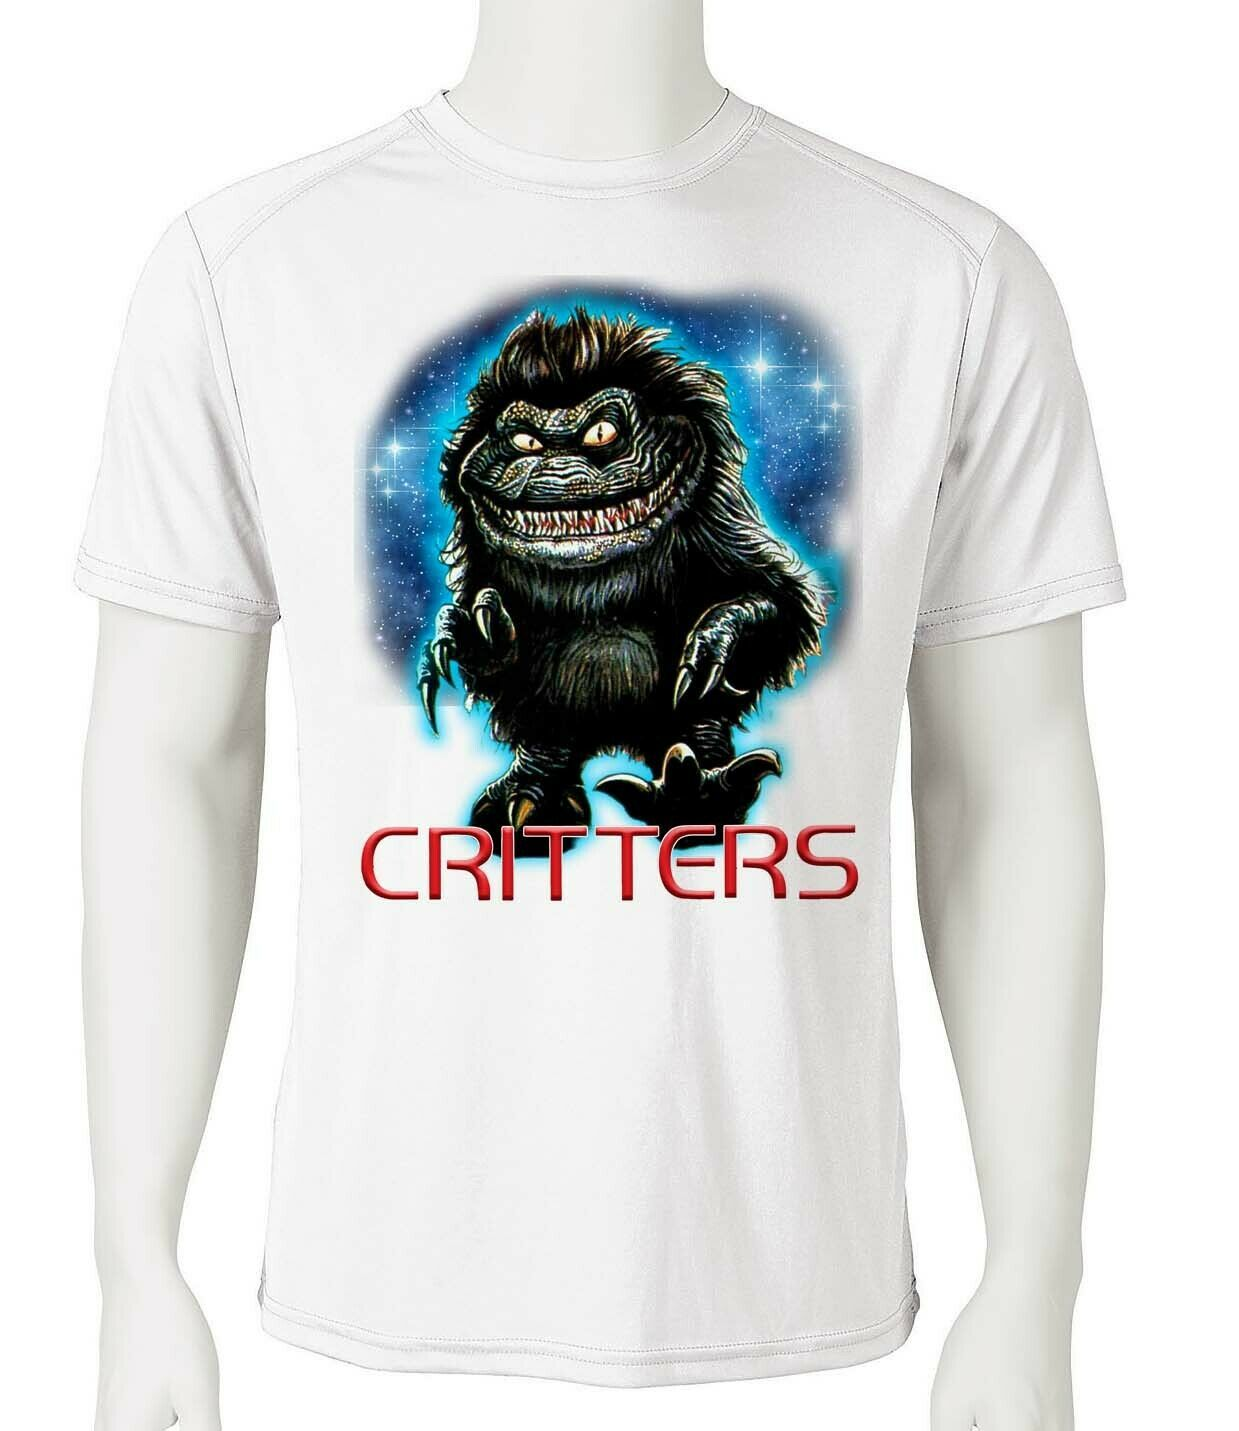 Critters dri fit graphic t shirt moisture wicking retro 80s movie spf tee 2